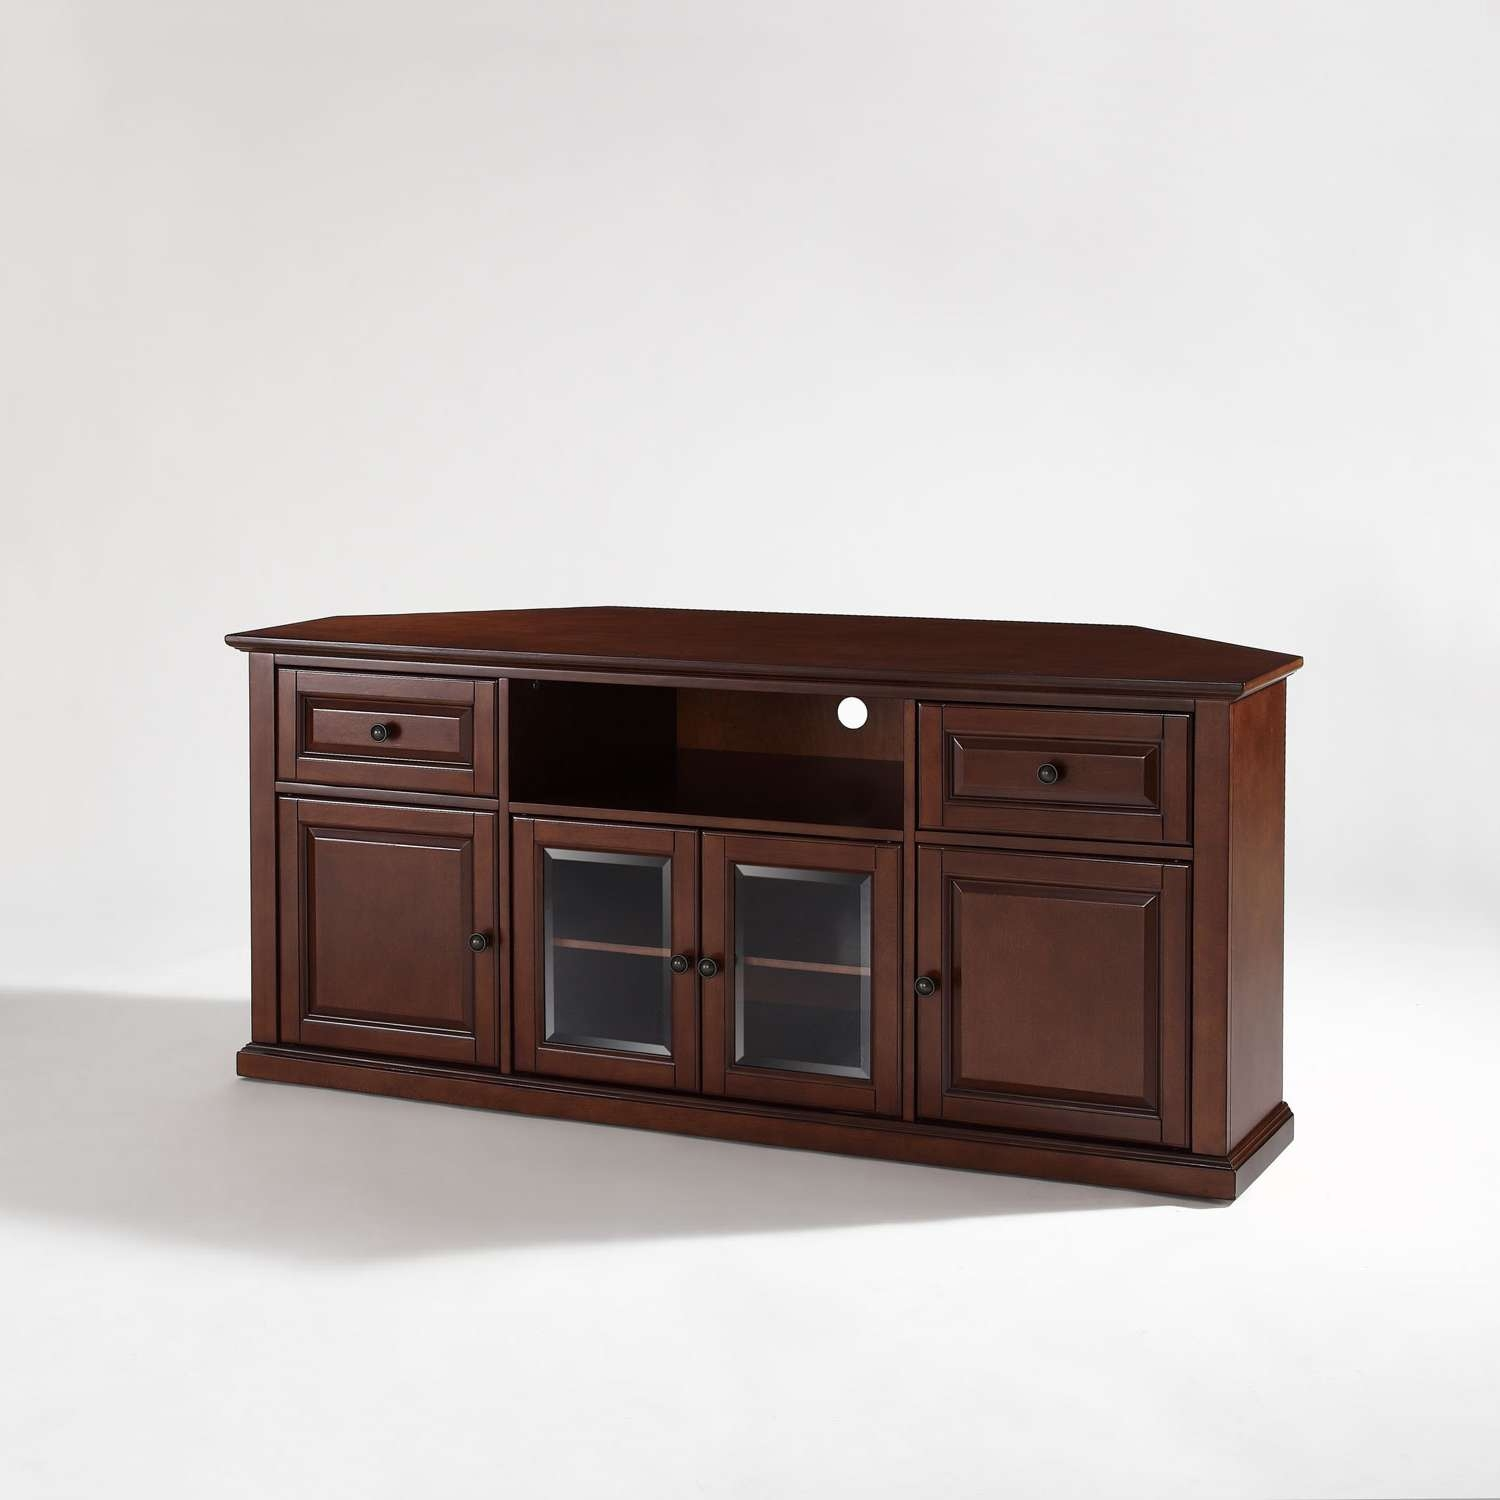 60 Inch Corner Tv Stand In Vintage Mahogany Crosley Furniture Intended For 24 Inch Corner Tv Stands (View 1 of 15)